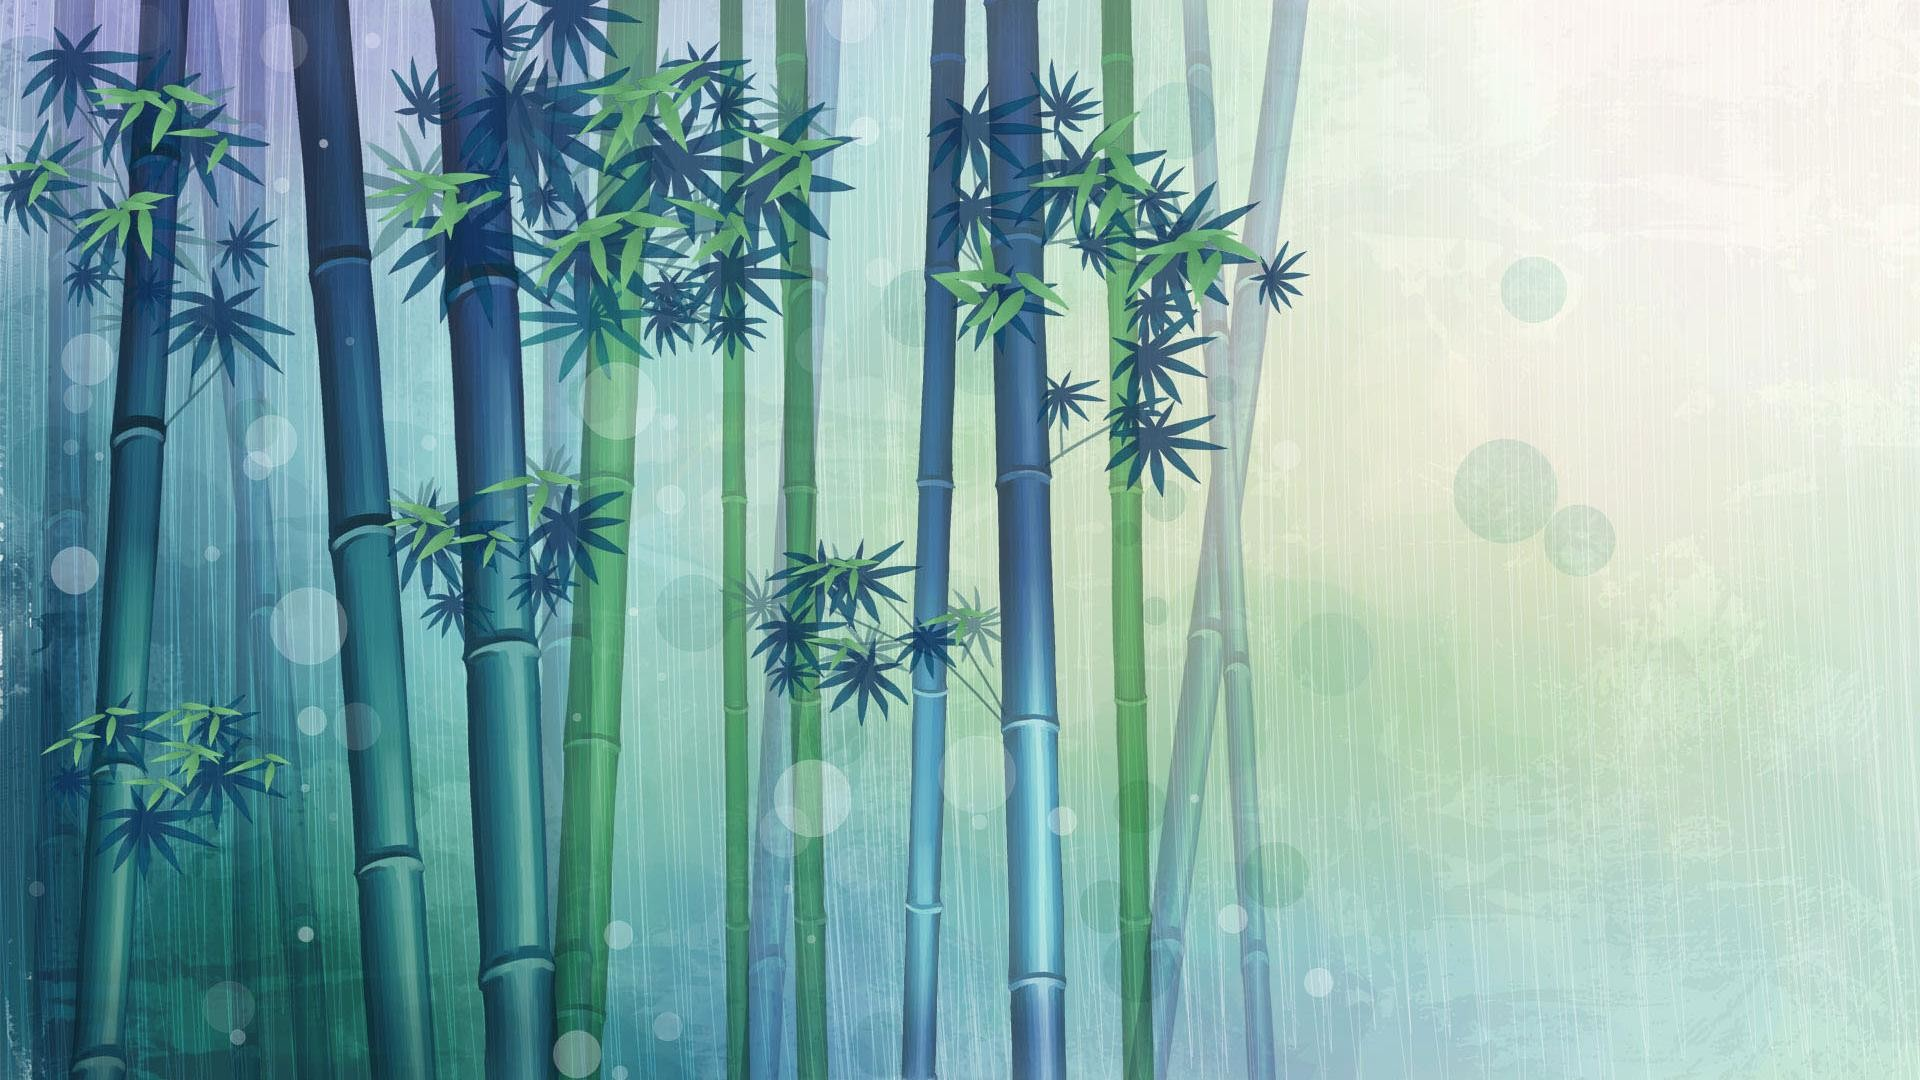 1920x1080  Hd Bamboo and rain painting desktop backgrounds wide wallpapers :1280x800,1440x900,1680x1050